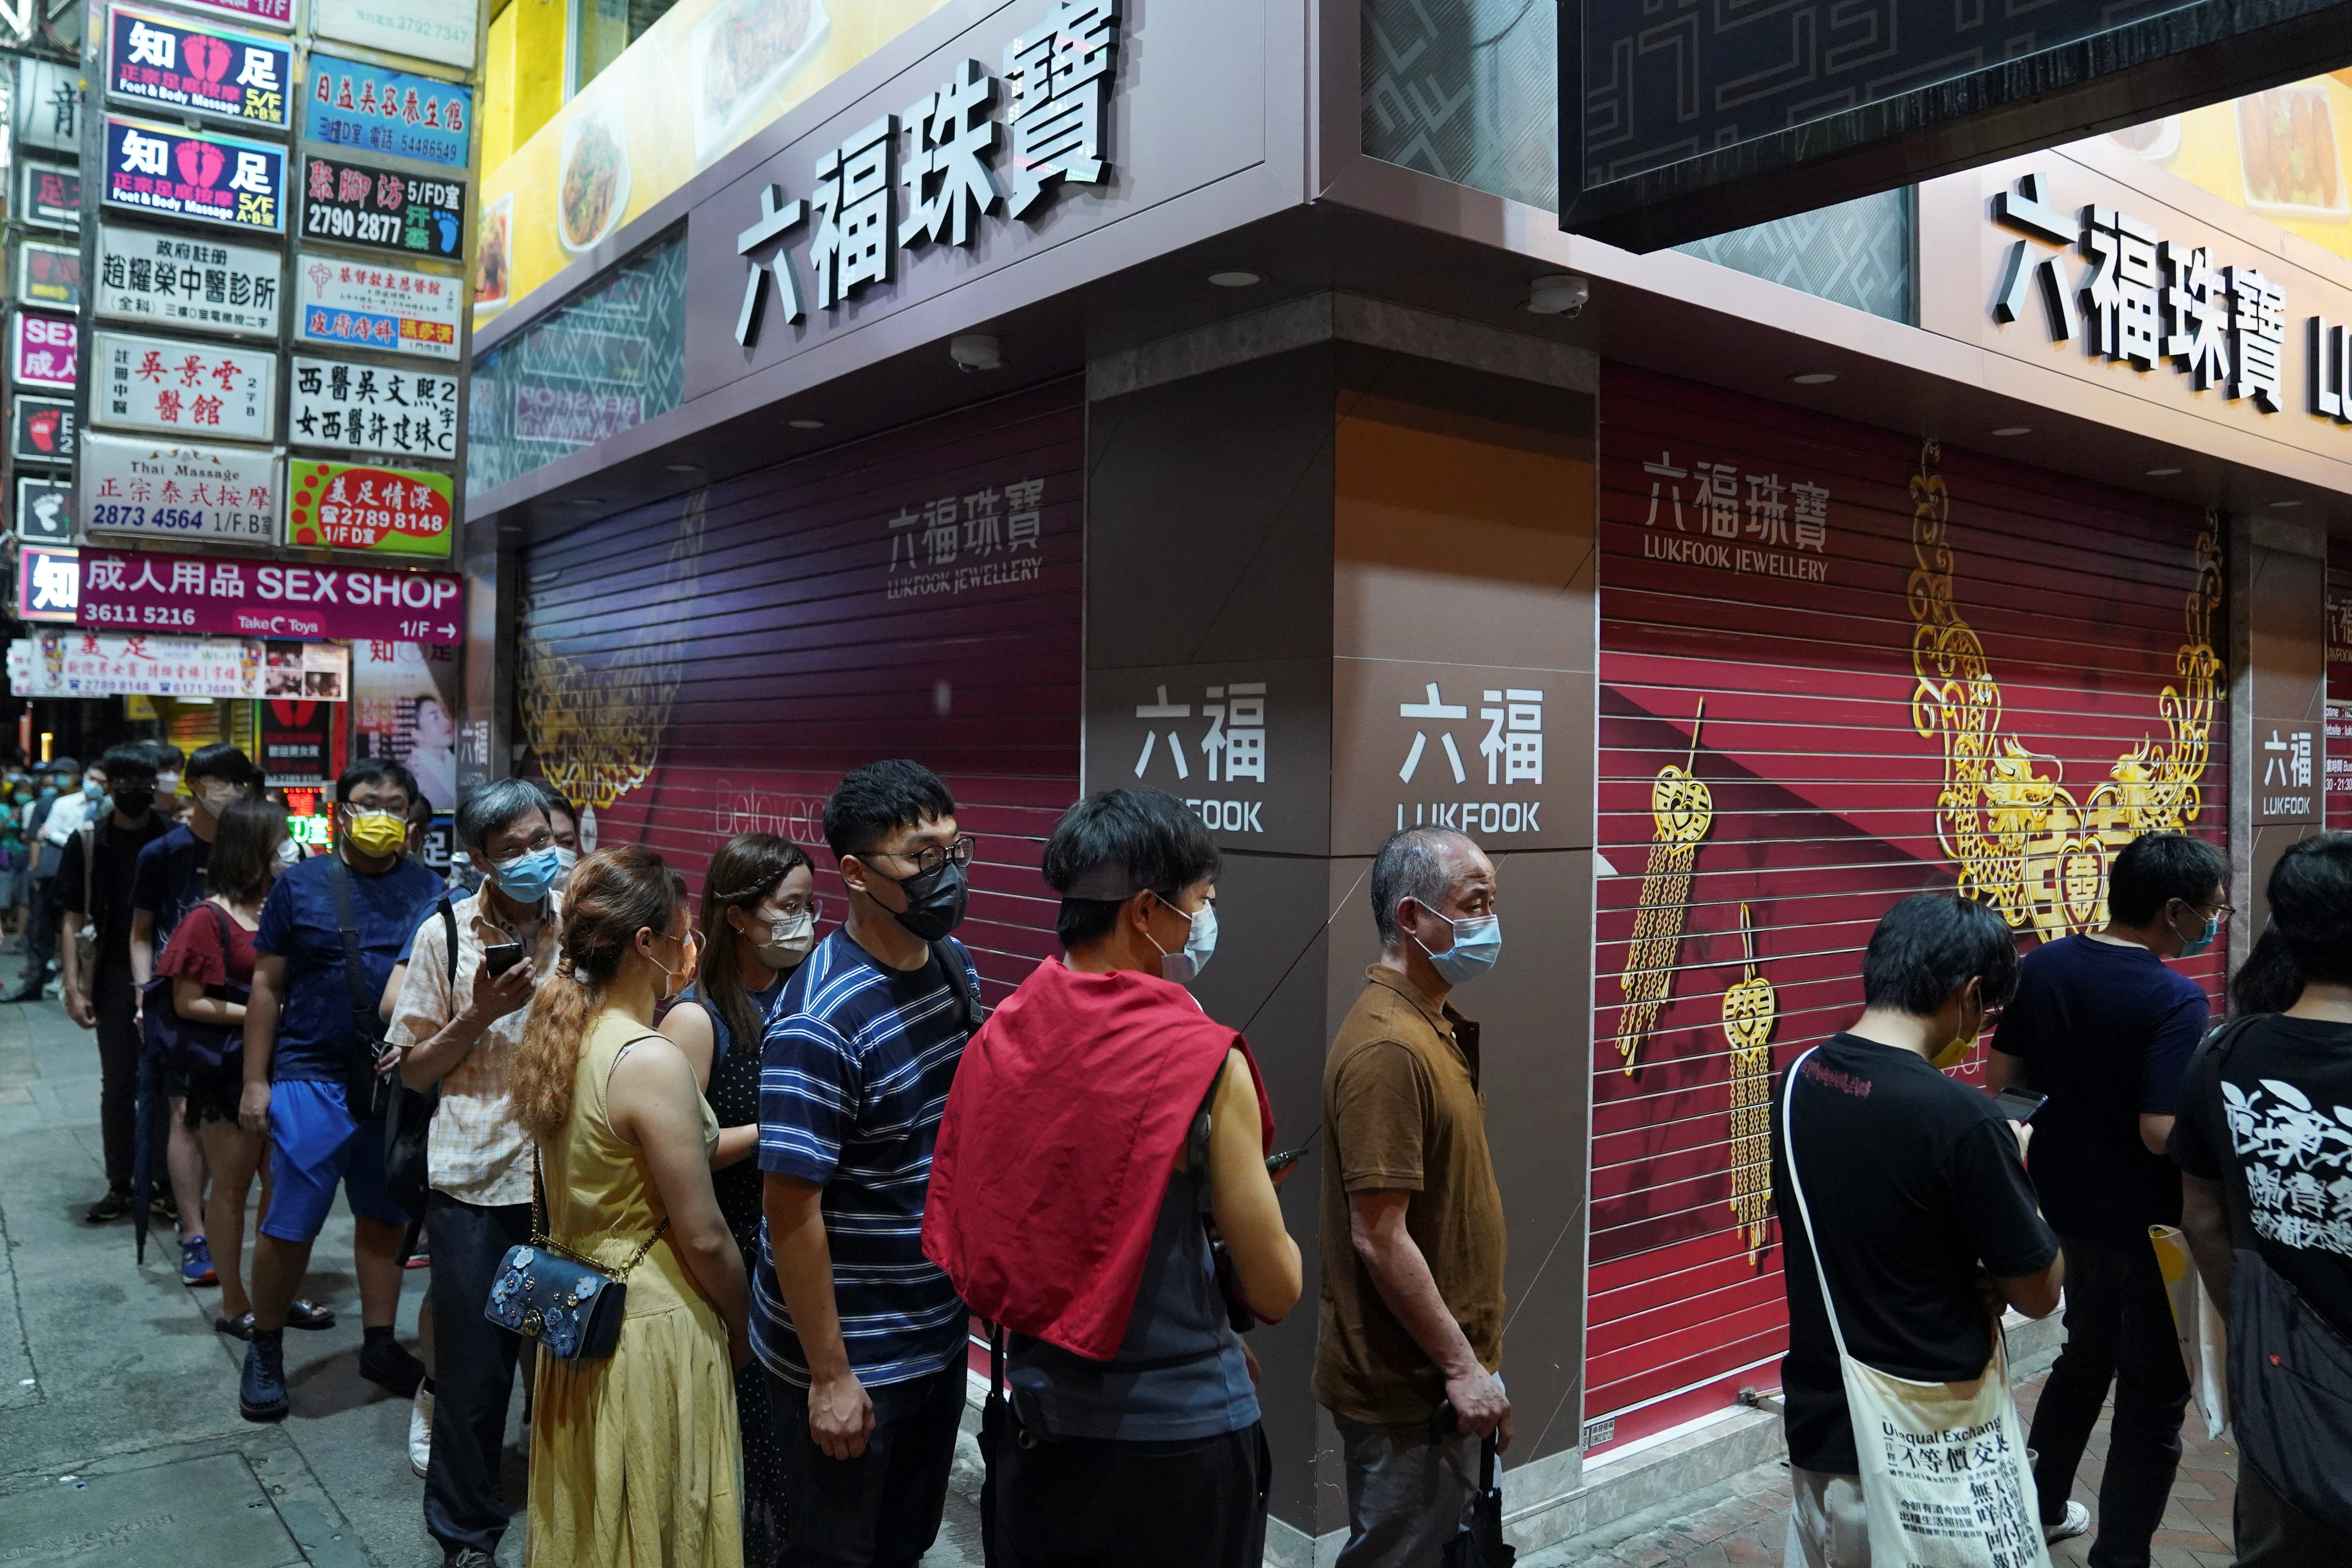 People queue to buy copies of the final edition of Apple Daily, published by Next Digital, in Hong Kong, China June 24, 2021. REUTERS/Lam Yik